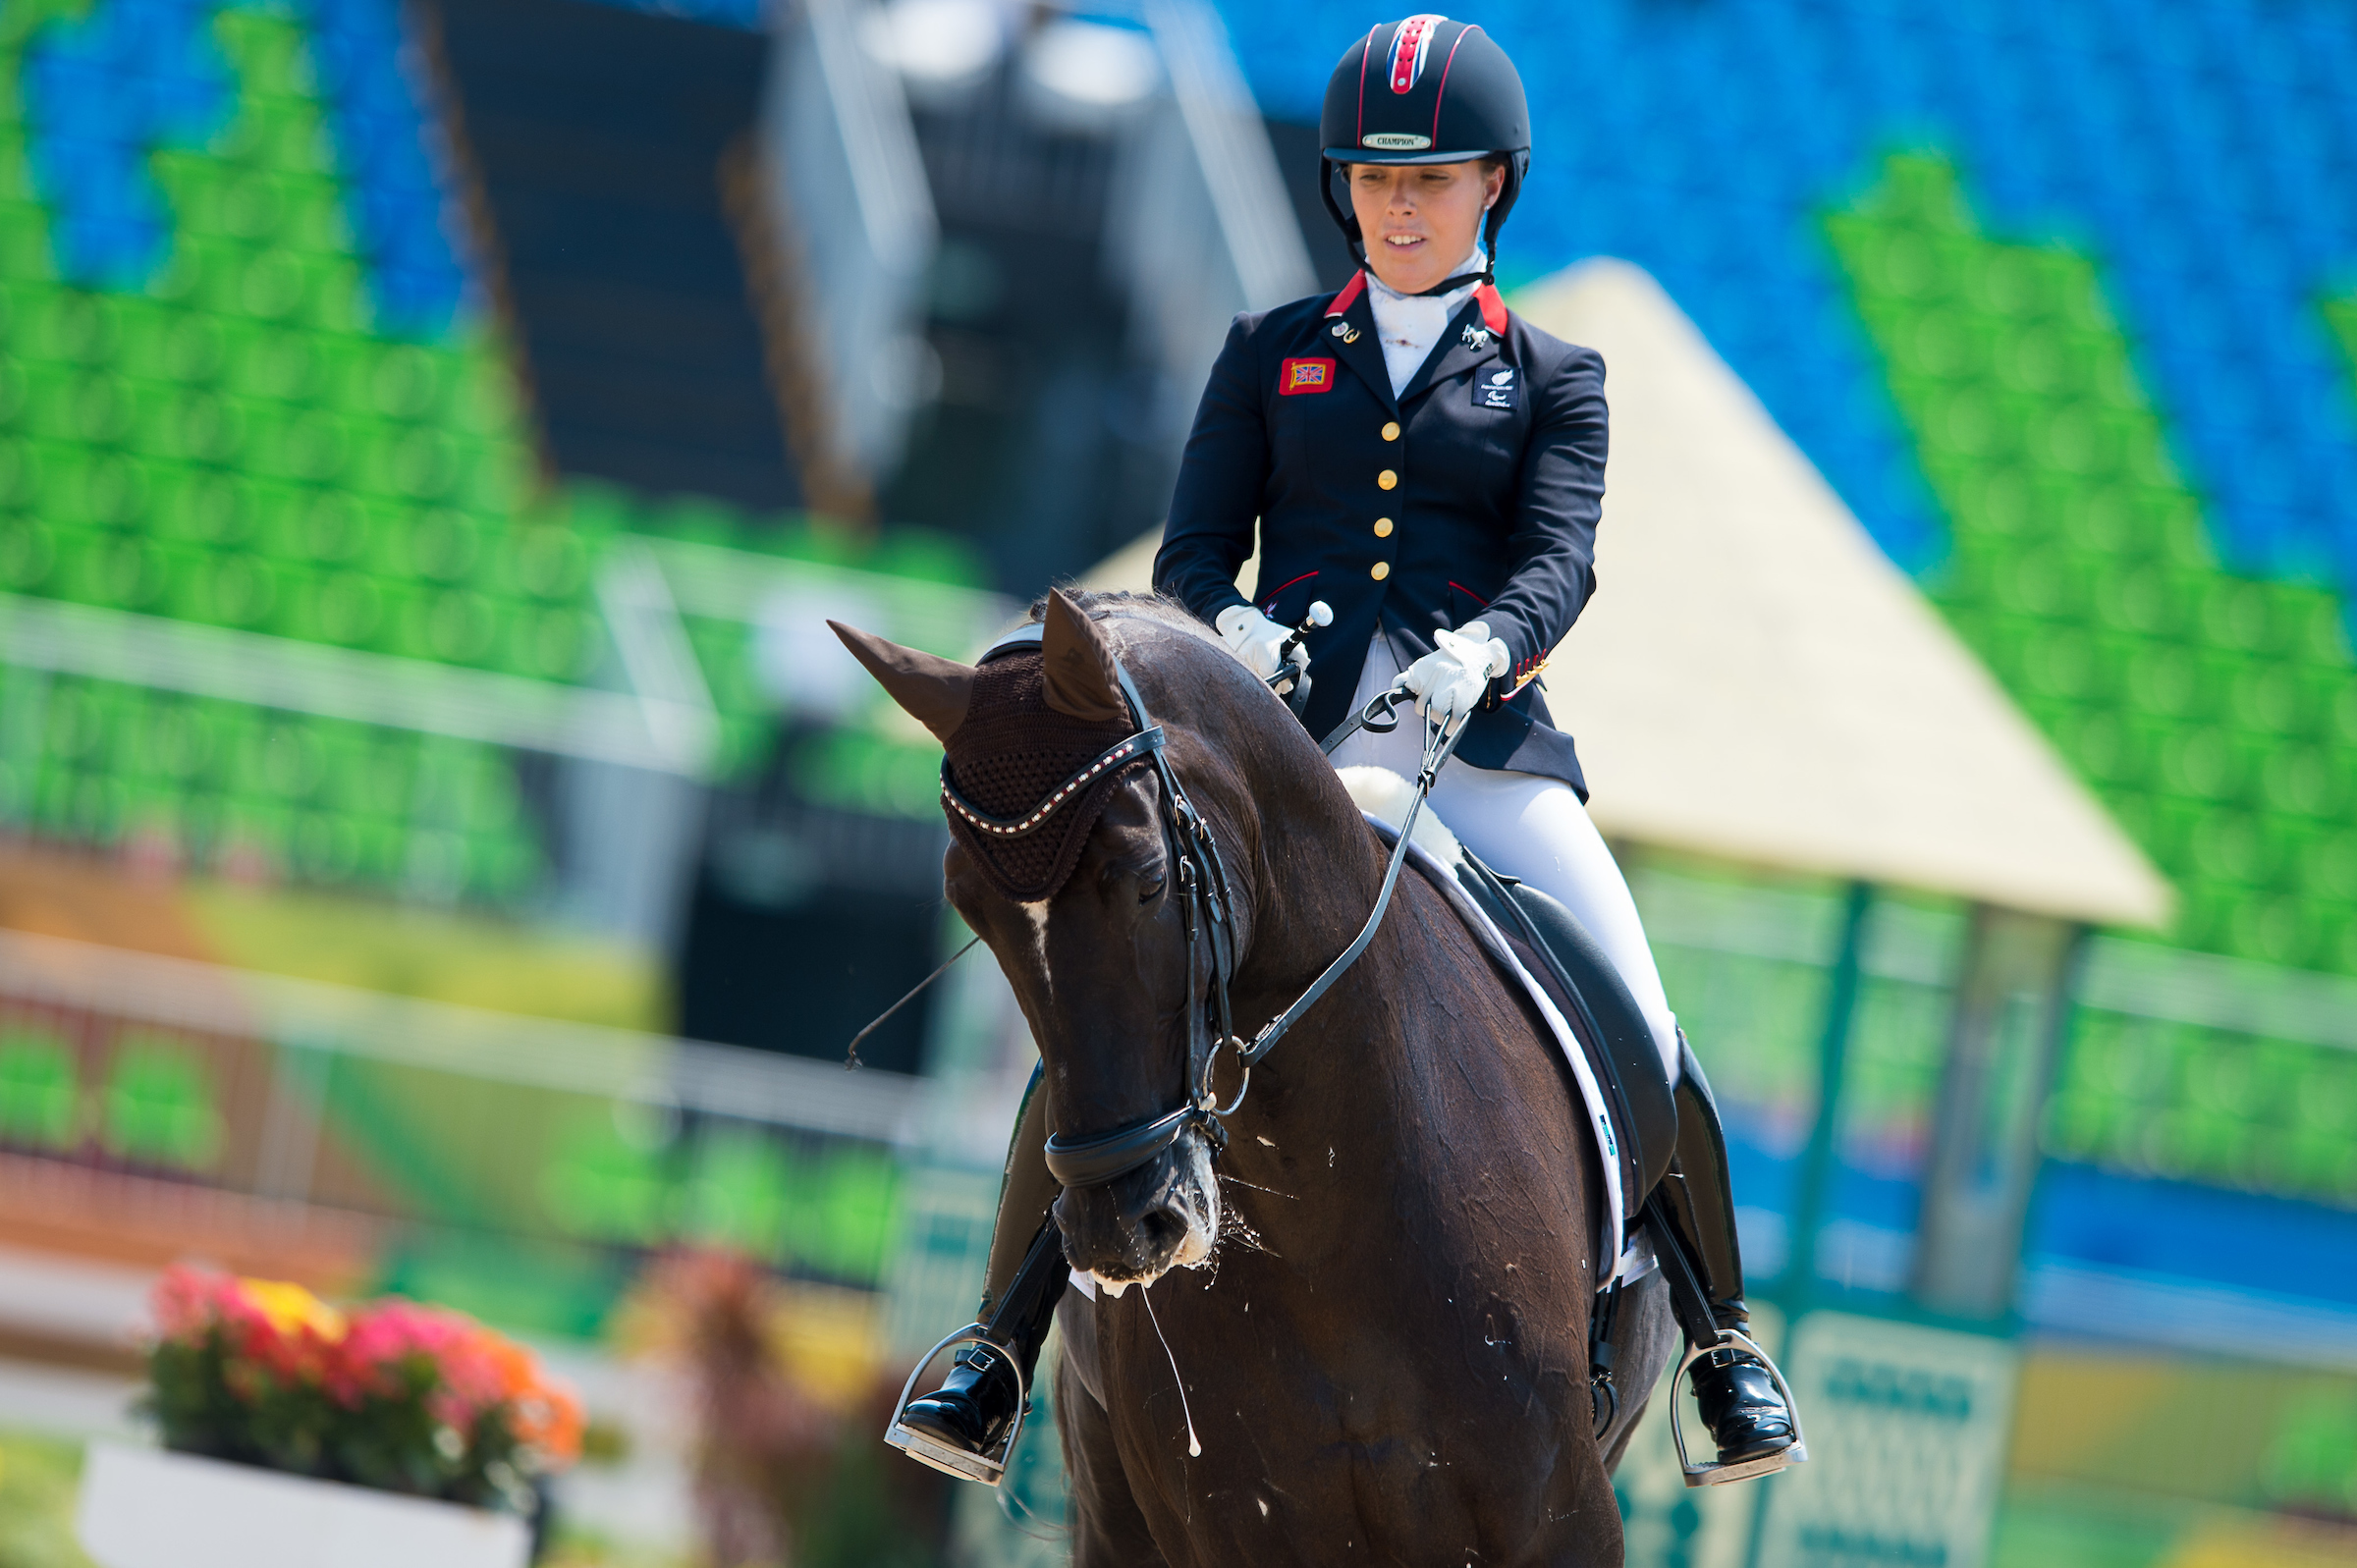 Sophie Wells (GBR) and Valorous ride to the top spot in the grade IV section (Credit: BEF/Jon Stroud Media)